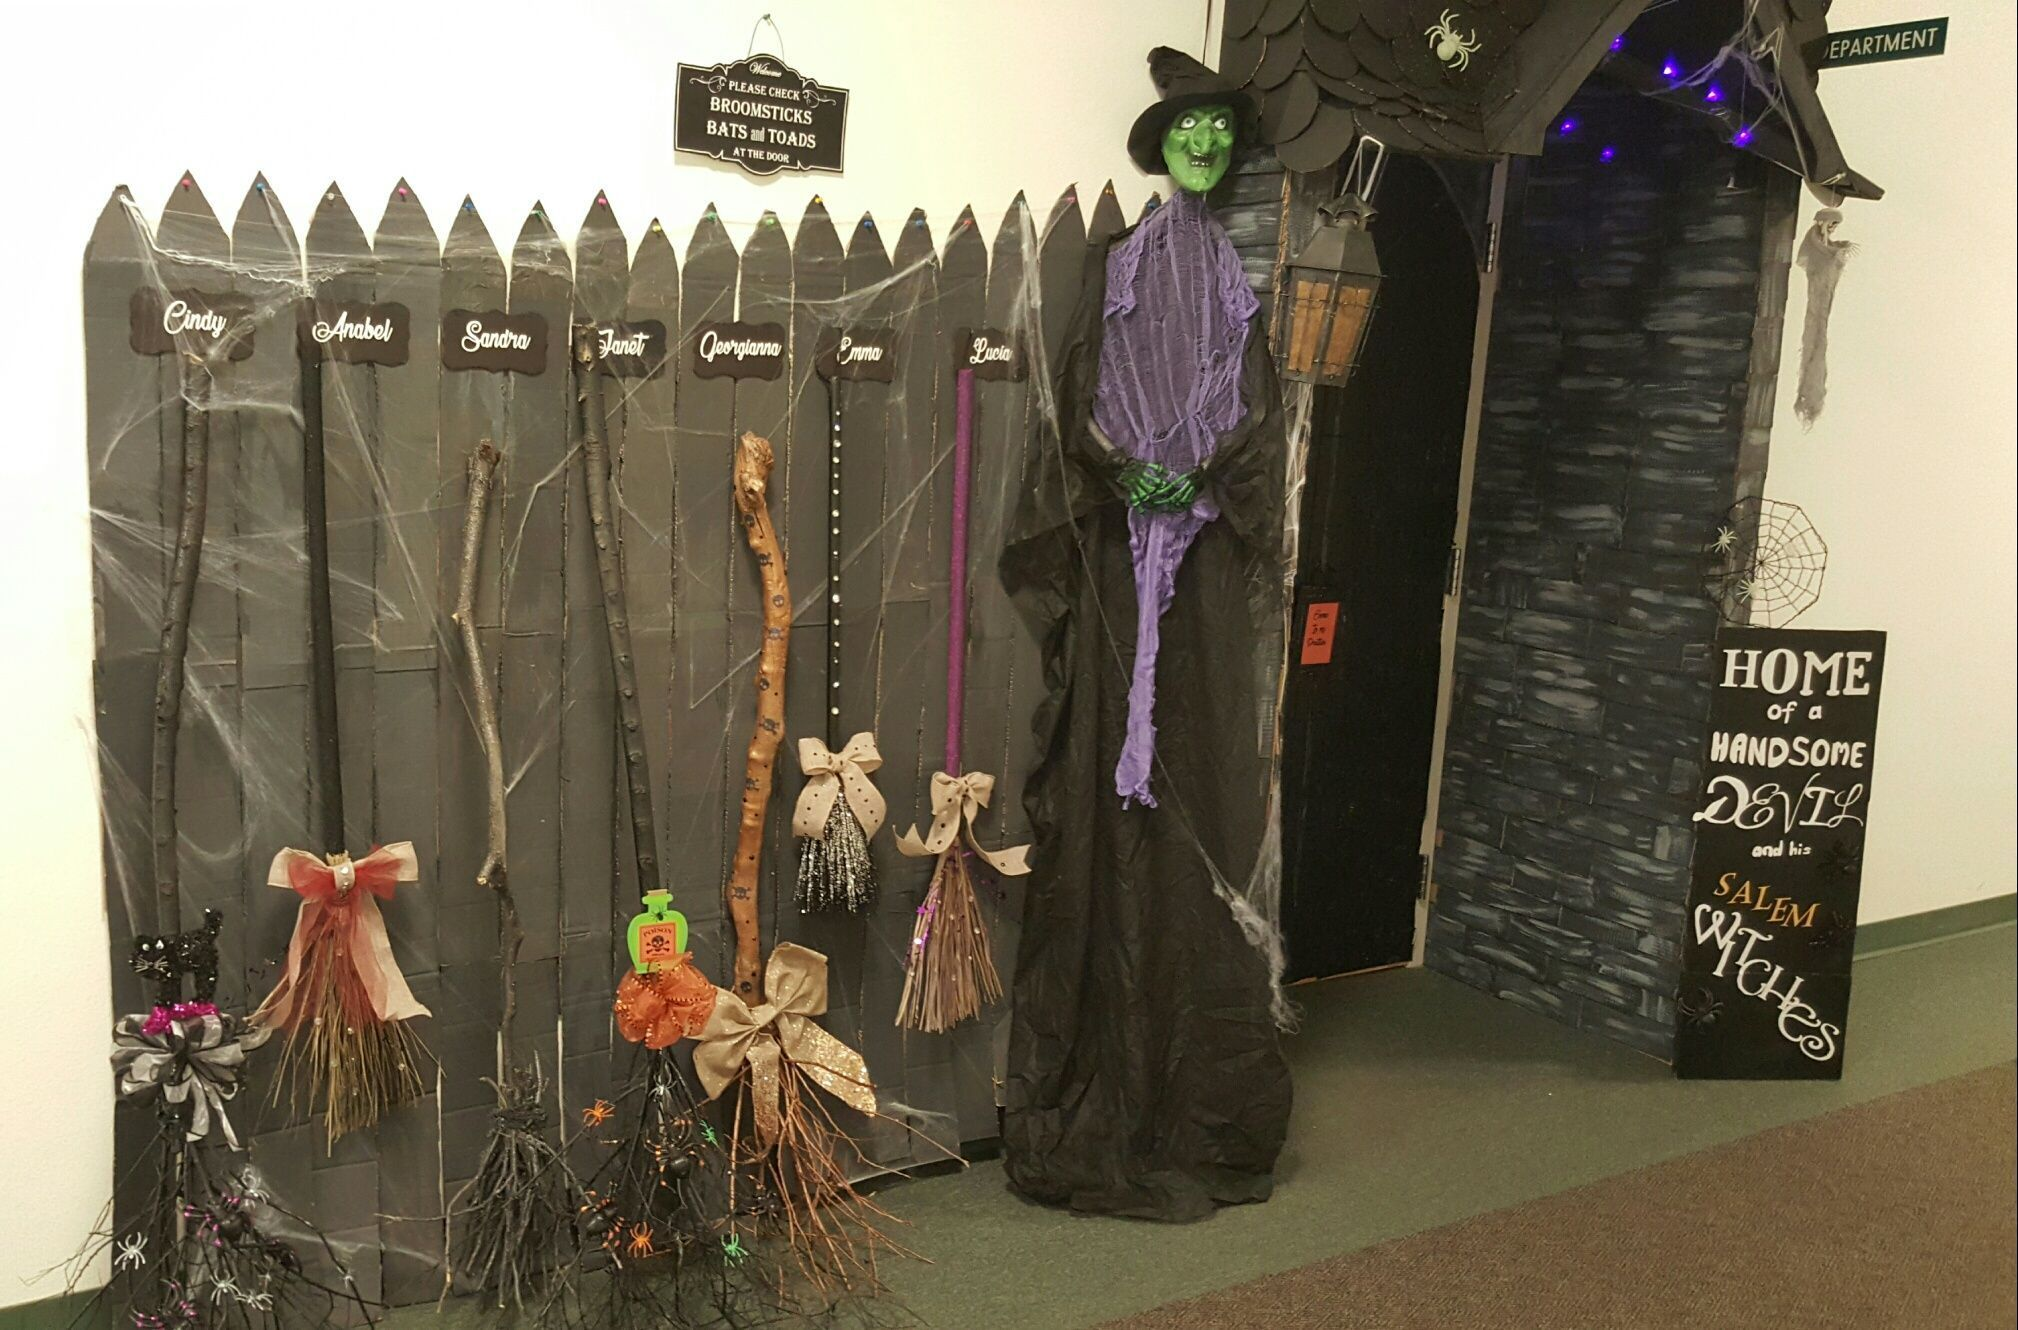 Broomsticks each made to specify the witches whom they belong to. Chaves County 2016 Door decorating contest. #doordecoratingcontest Broomsticks each made to specify the witches whom they belong to. Chaves County 2016 Door decorating contest. #doordecoratingcontest Broomsticks each made to specify the witches whom they belong to. Chaves County 2016 Door decorating contest. #doordecoratingcontest Broomsticks each made to specify the witches whom they belong to. Chaves County 2016 Door decorating